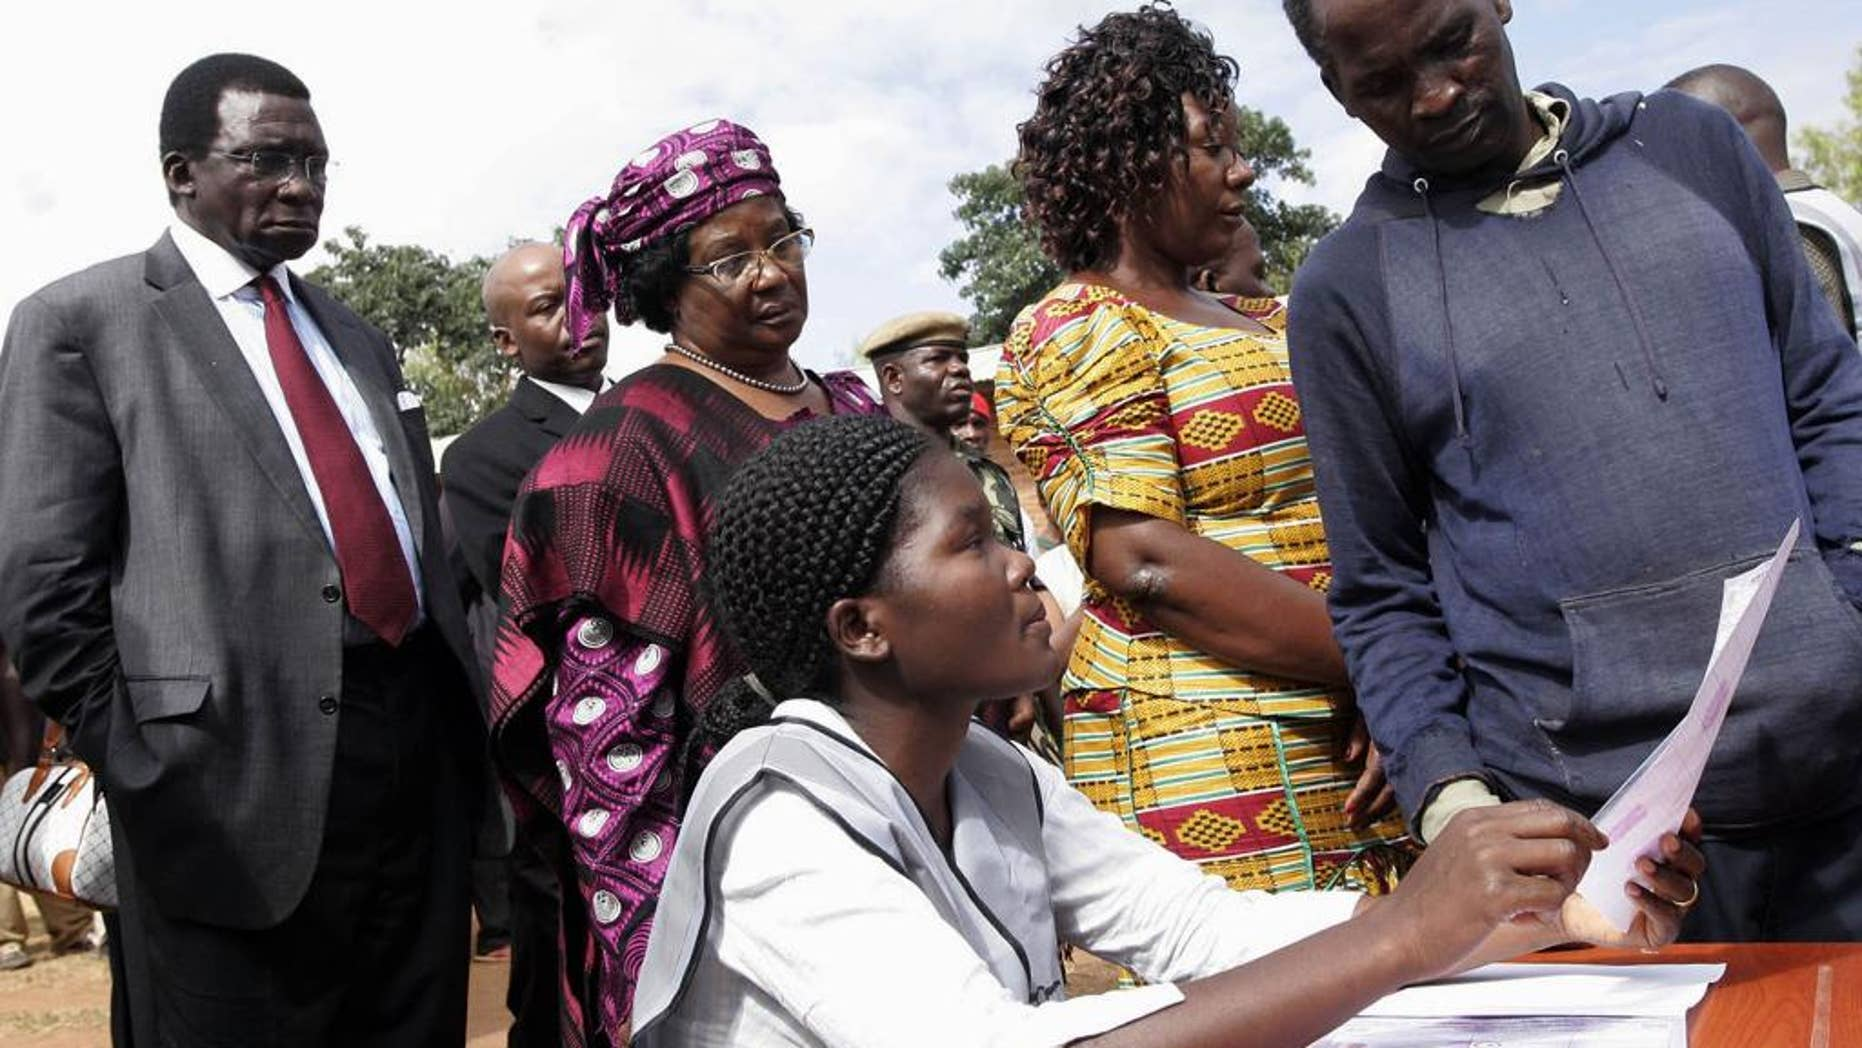 Background from left to right, Chief Justice Richard Banda, his wife, Malawi President Joyce Banda, and  younger sister  Anjimile Mtila-Oponyo, join a voting queue  to cast their votes in the eastern district of Zomba, Malawi, Tuesday, May 20, 2014. Africa's second female president Joyce Banda is facing stiff challenges from a field of 12 candidates in Malawi's elections Tuesday. (AP Photo/Raphael Tenthani)